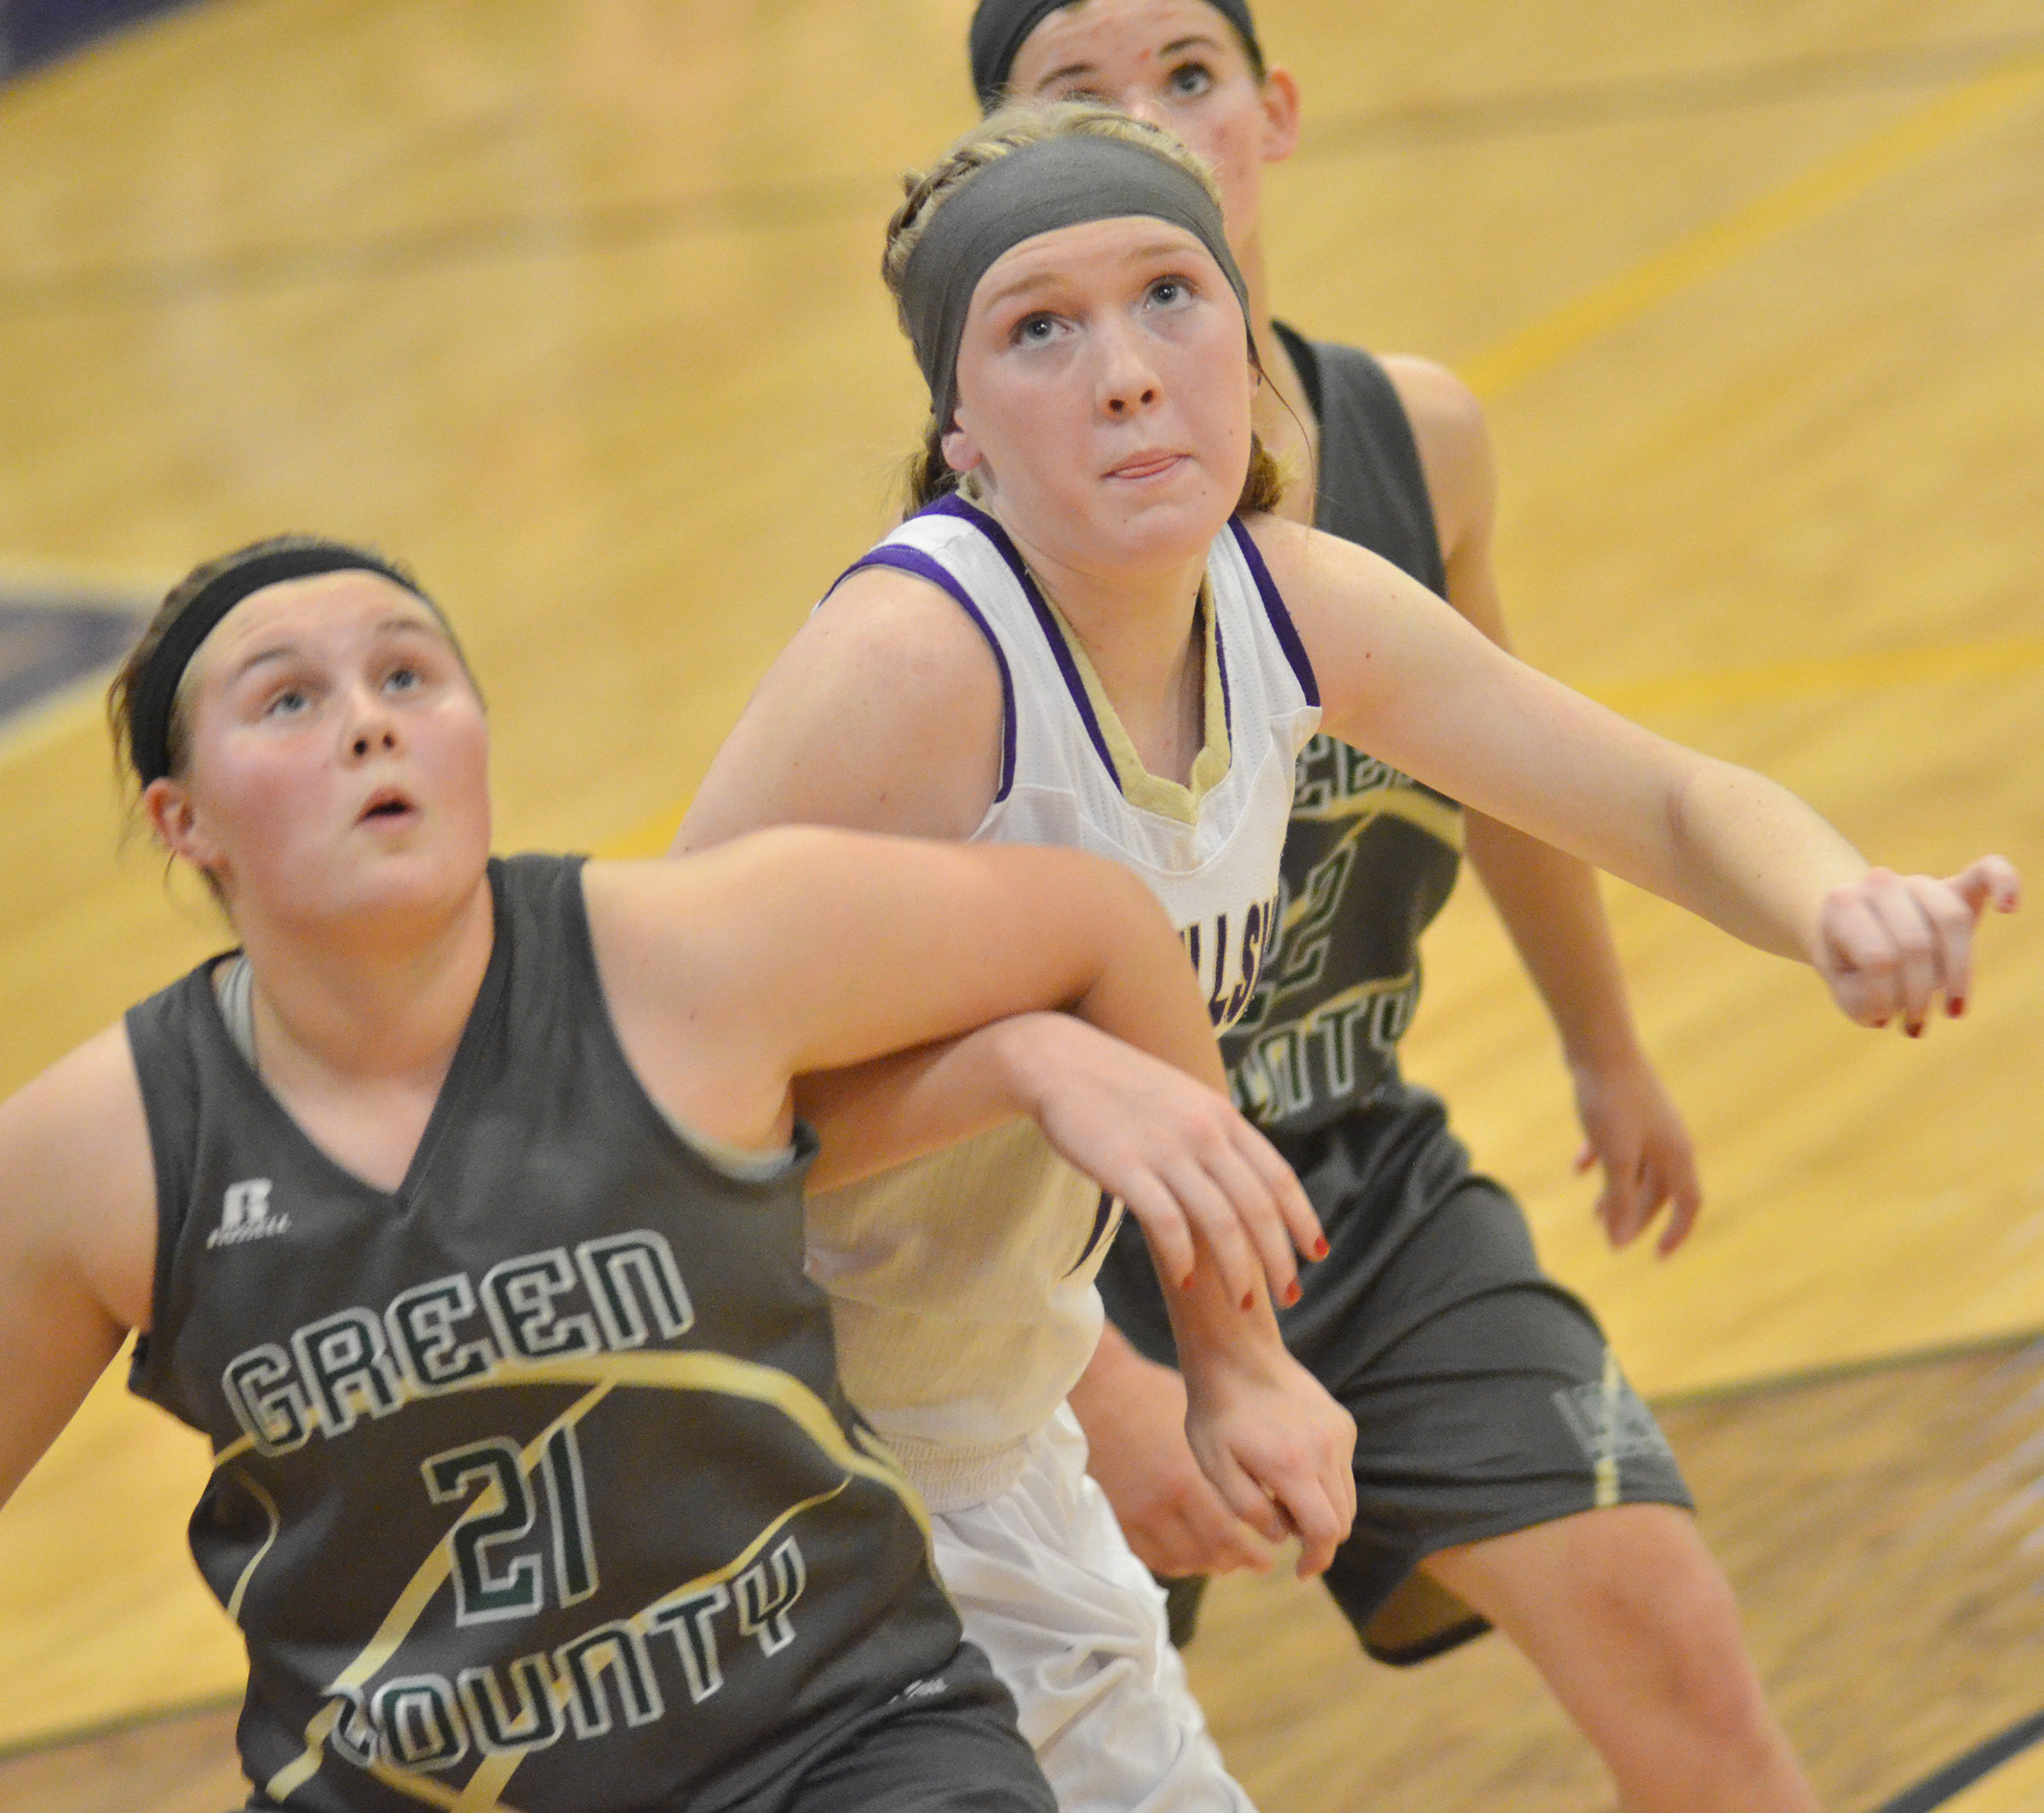 CHS freshman Catlyn Clausen fights for the ball.